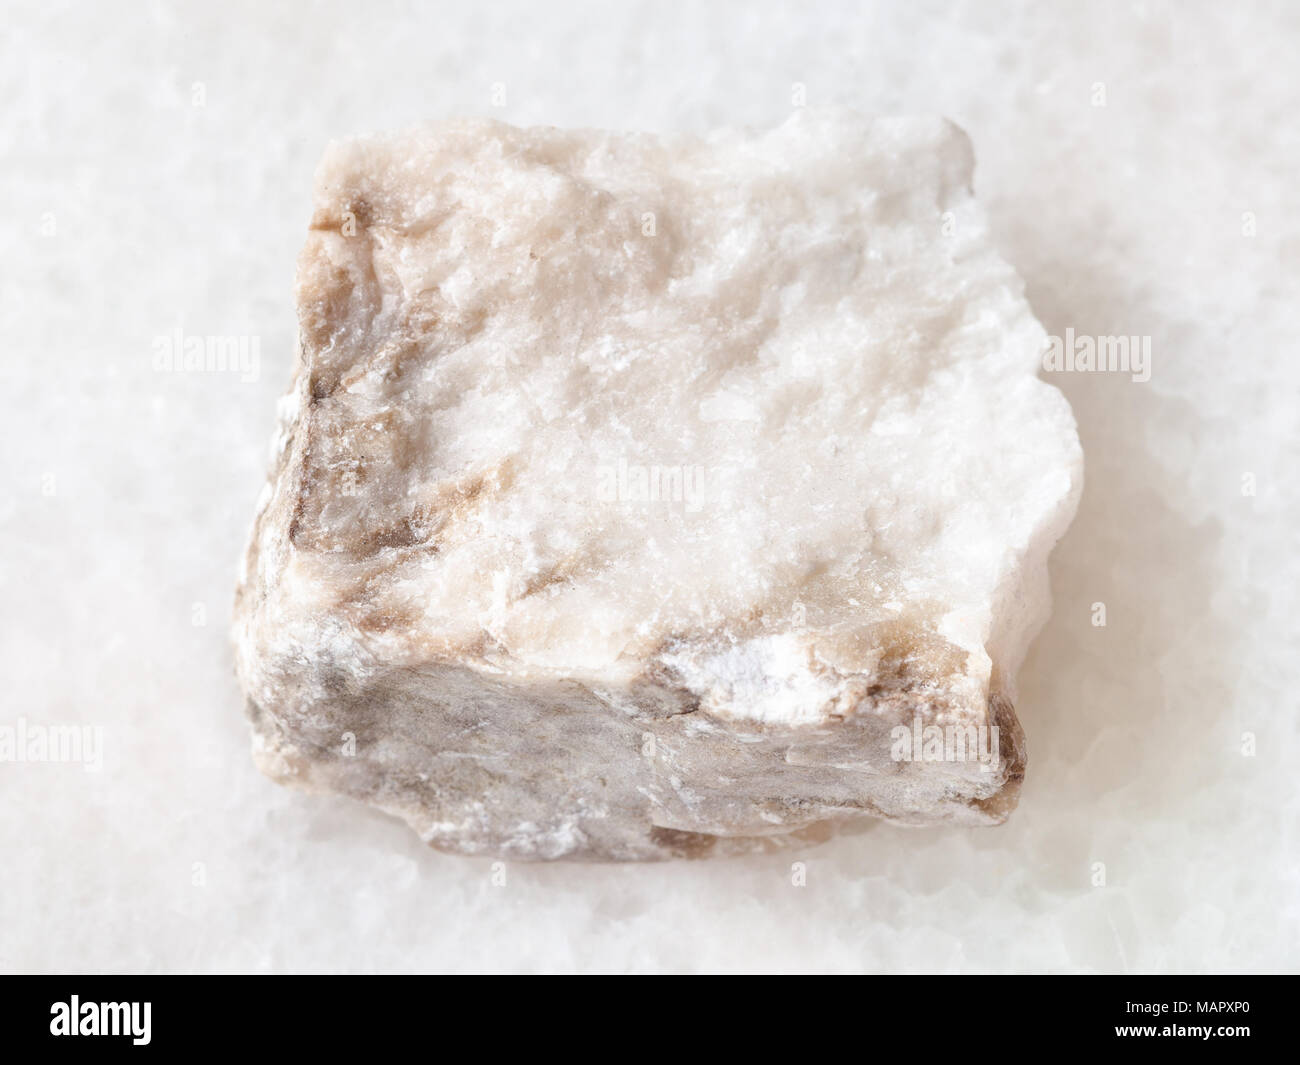 macro shooting of natural mineral rock specimen - rough Anhydrite stone on white marble background - Stock Image